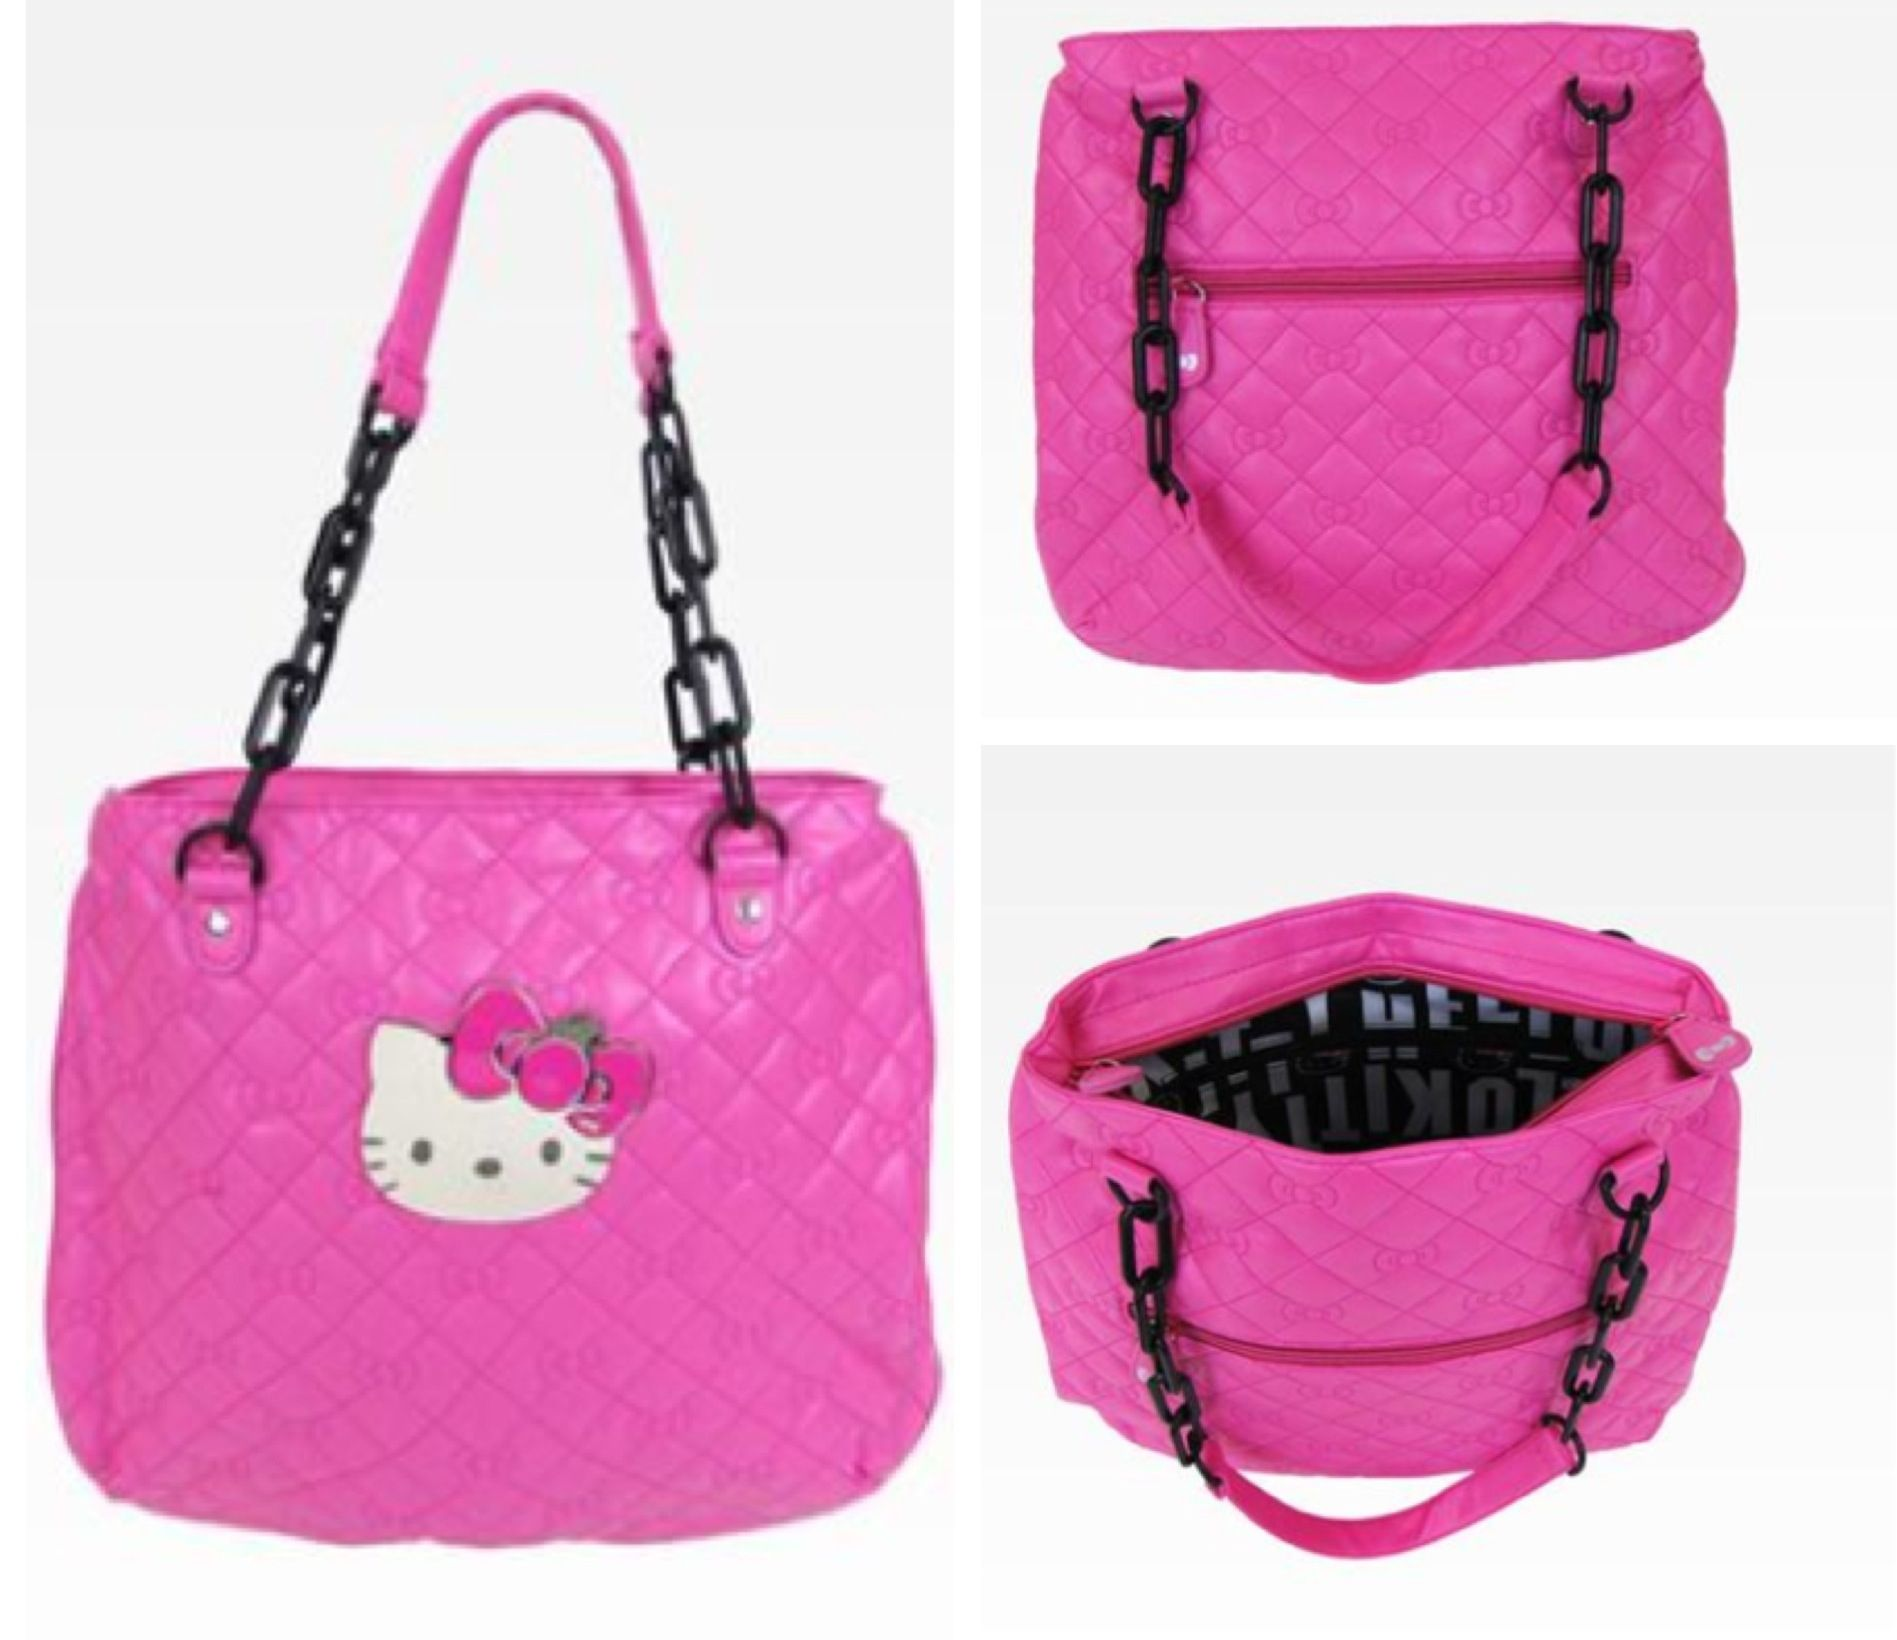 b10fd00c1f Head out in style with this lovely Hello Kitty Shoulder Tote Bag. This  zipper closure